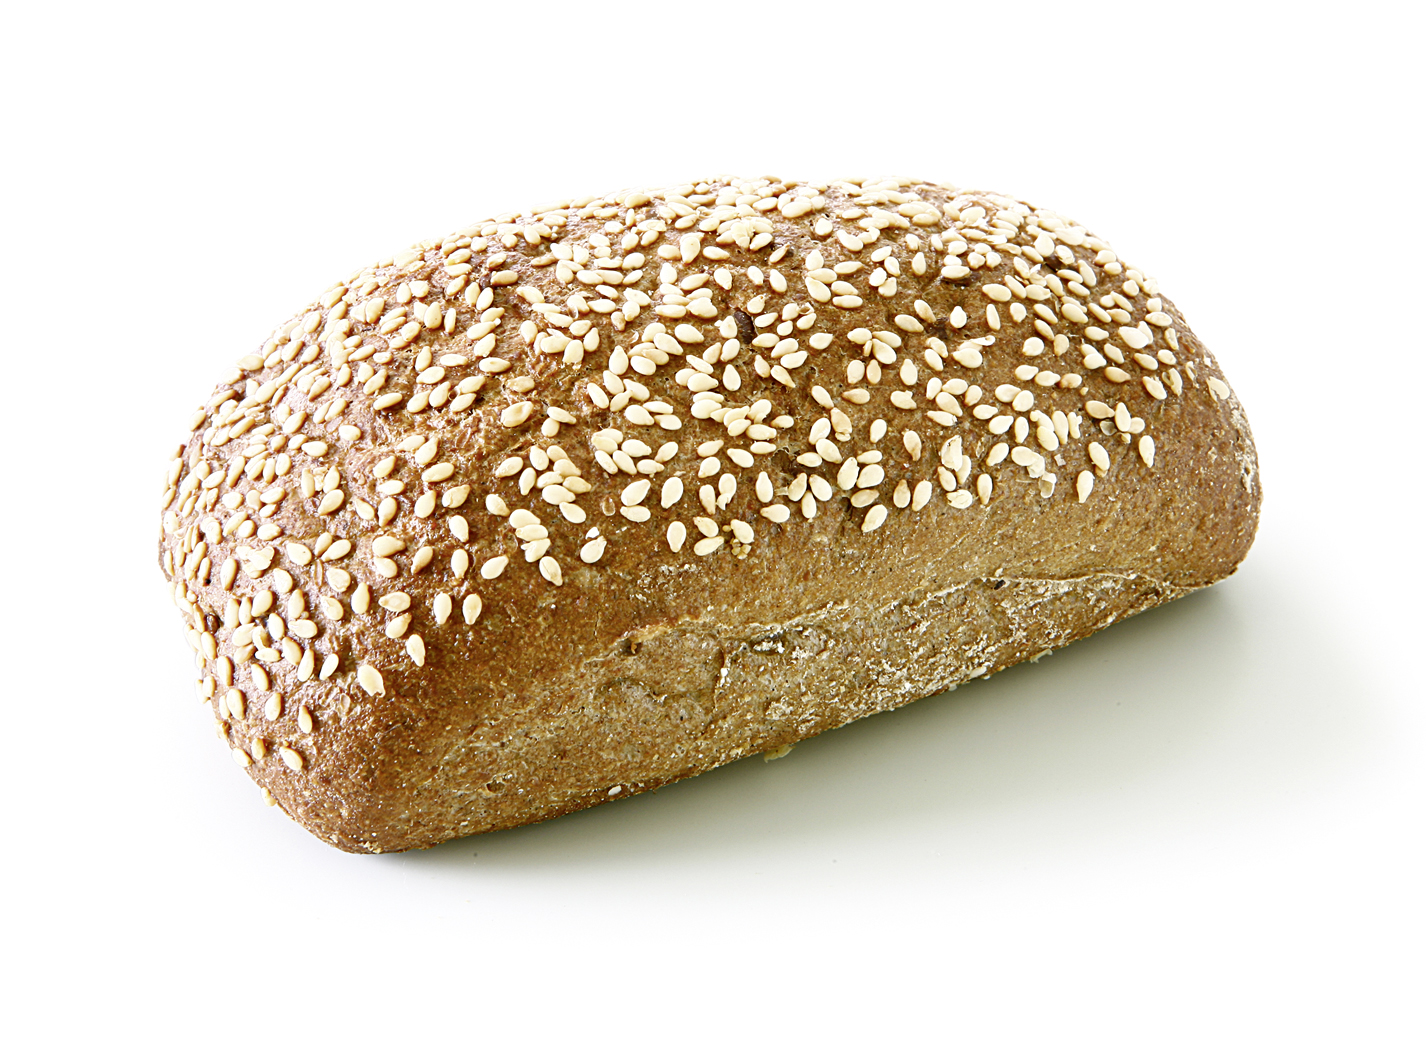 Wholegrain roll - Wholegrain roll with sesame, linseeds, sunflower seeds, pumpkin seeds and oat wholegrain flakes